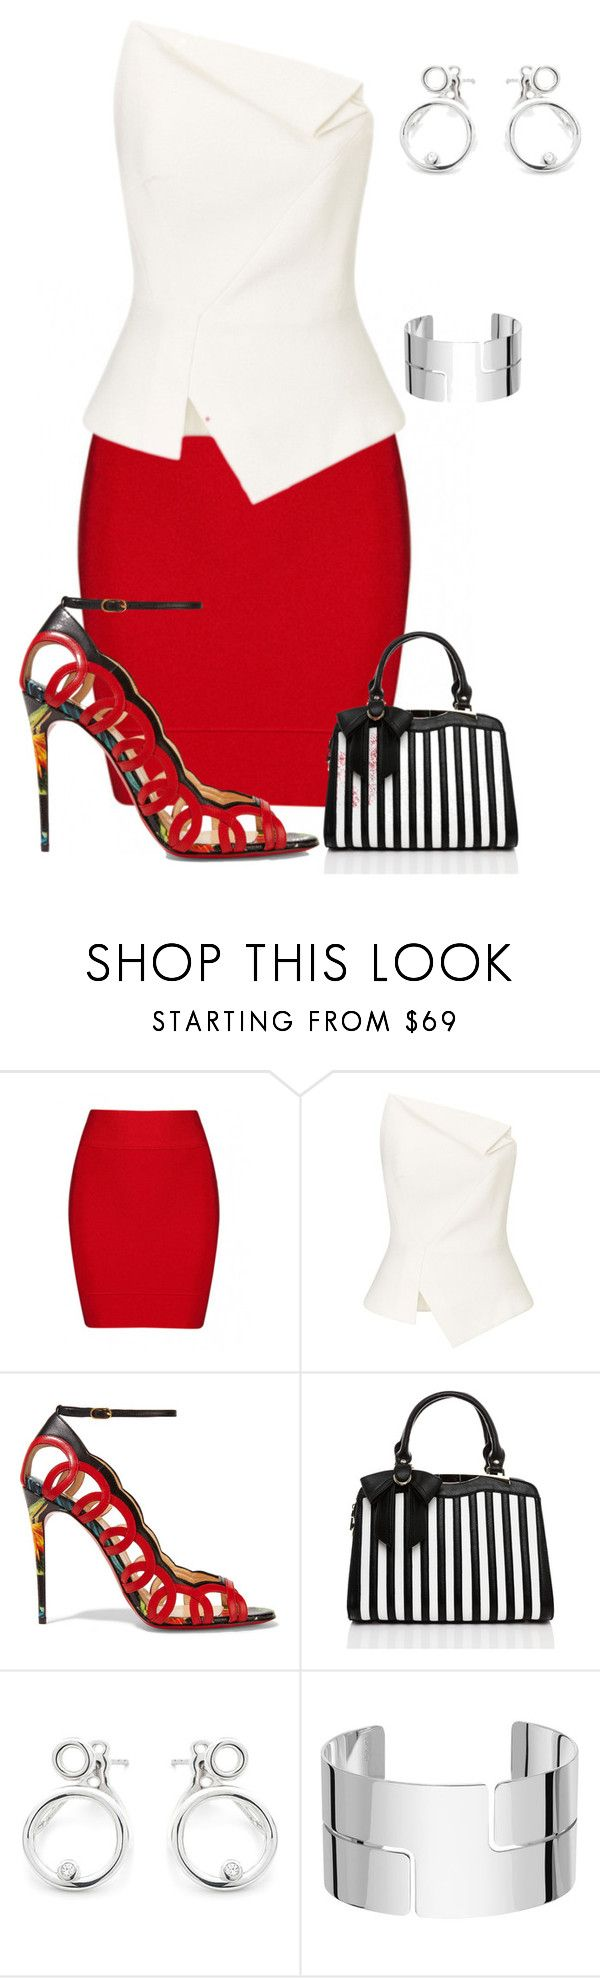 """Untitled #733"" by angela-vitello on Polyvore featuring Roland Mouret, Christian Louboutin and Dinh Van"